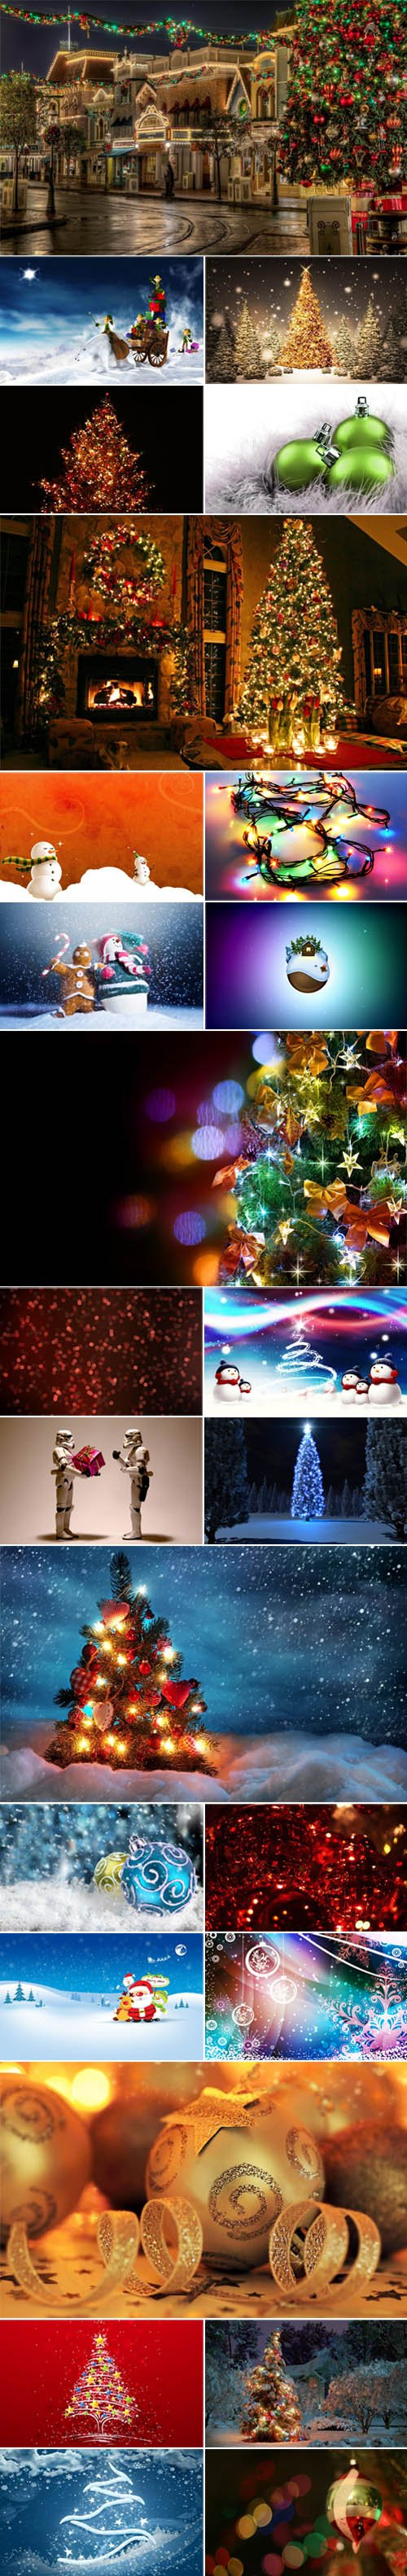 25 Super HD Christmas Wallpapers + 25 Christmas Facebook Covers